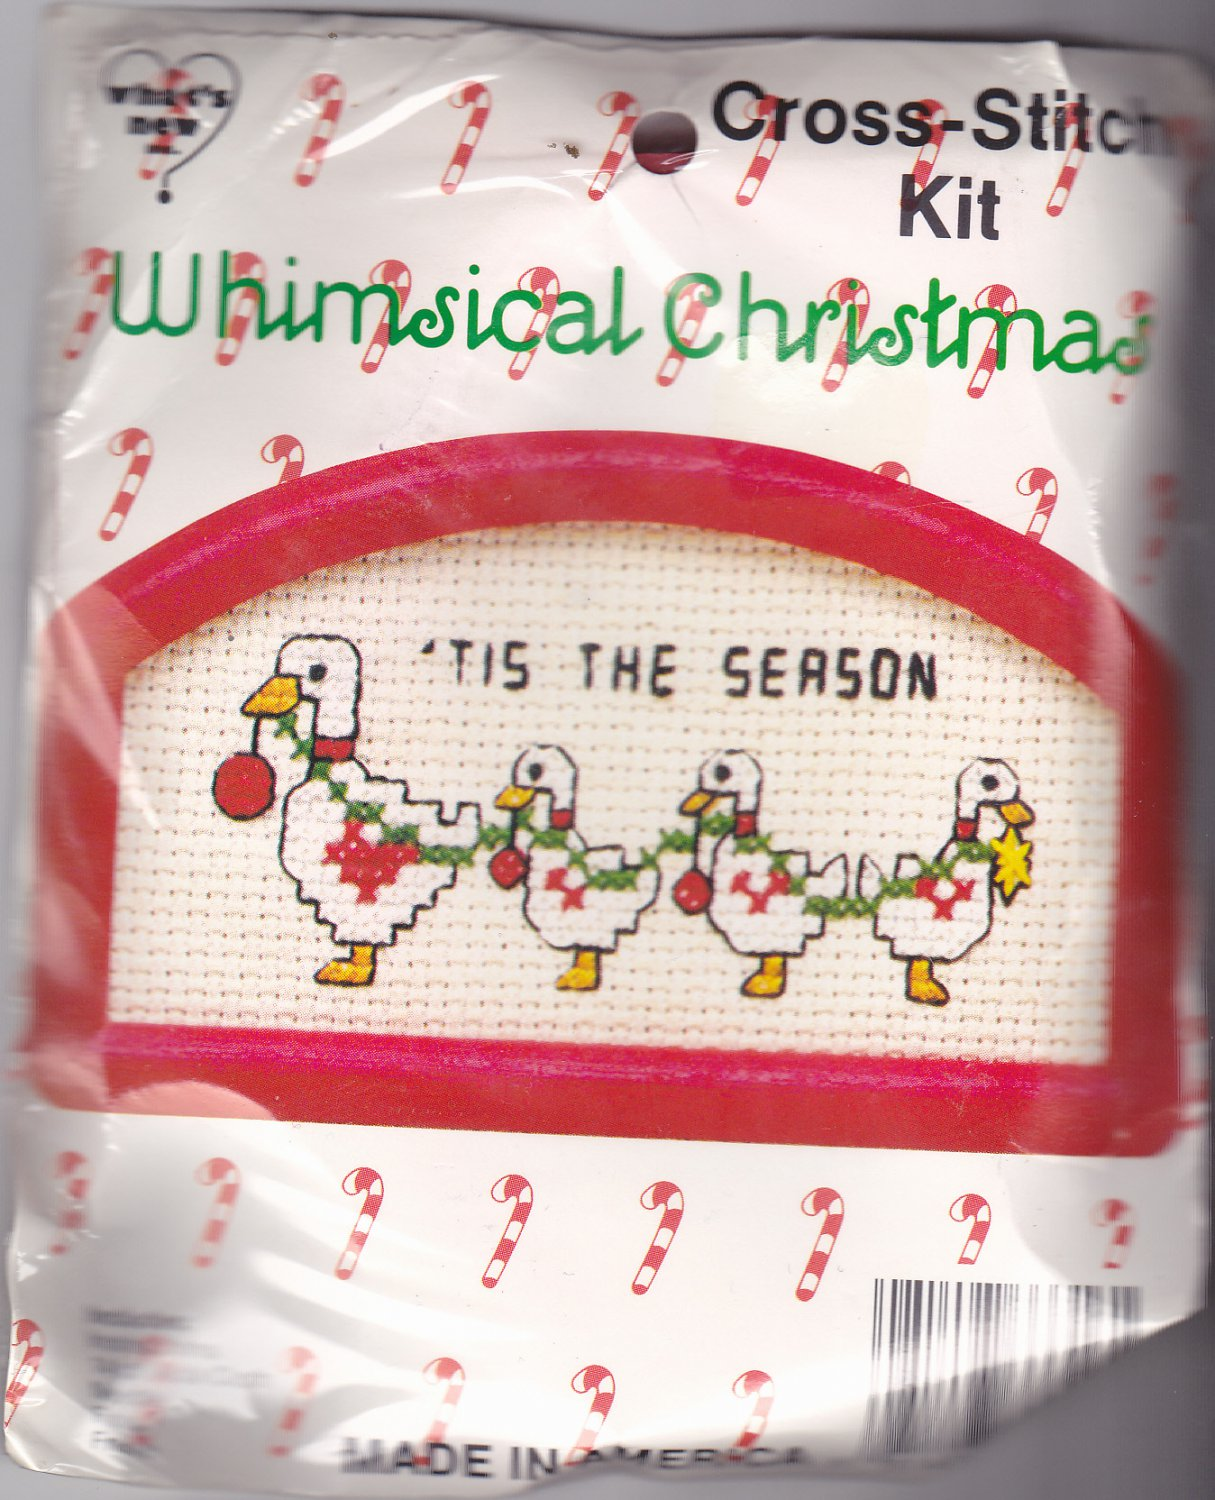 New Berlin Co. Counted Cross Stitch Ornament Kit 033316 Tis The Season Ducks